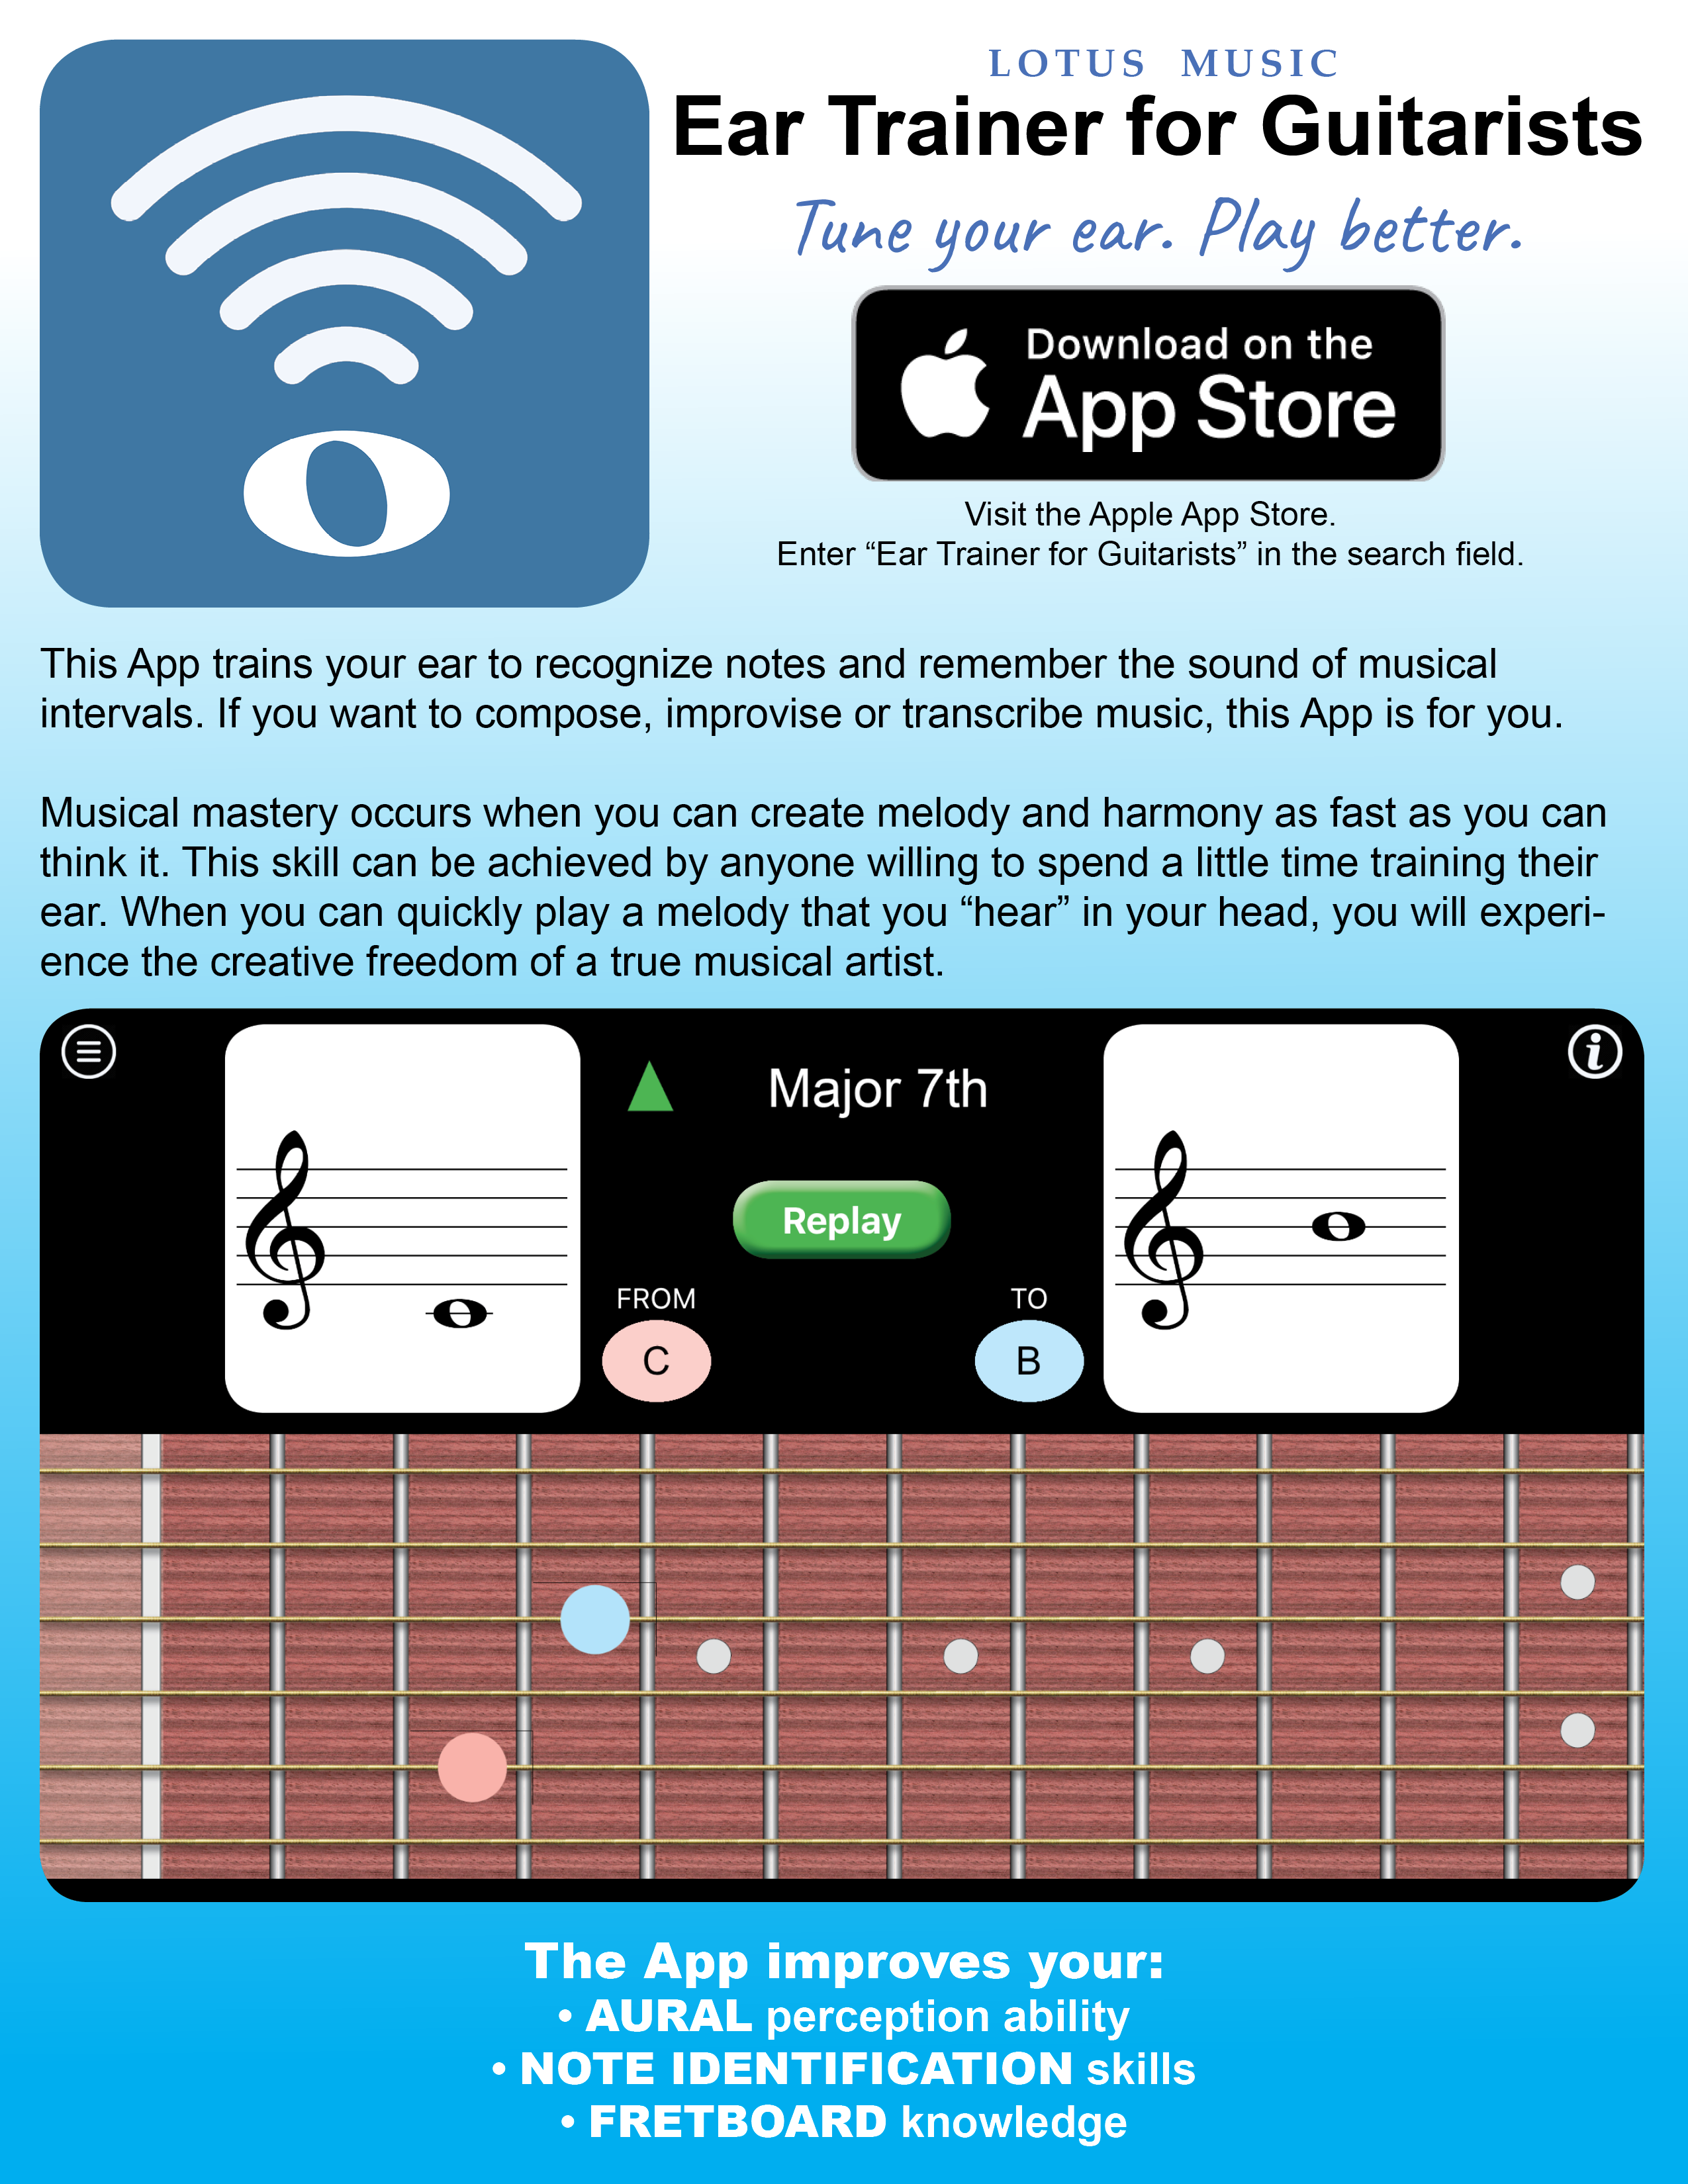 This new app trains the ear of any guitarist who wants to